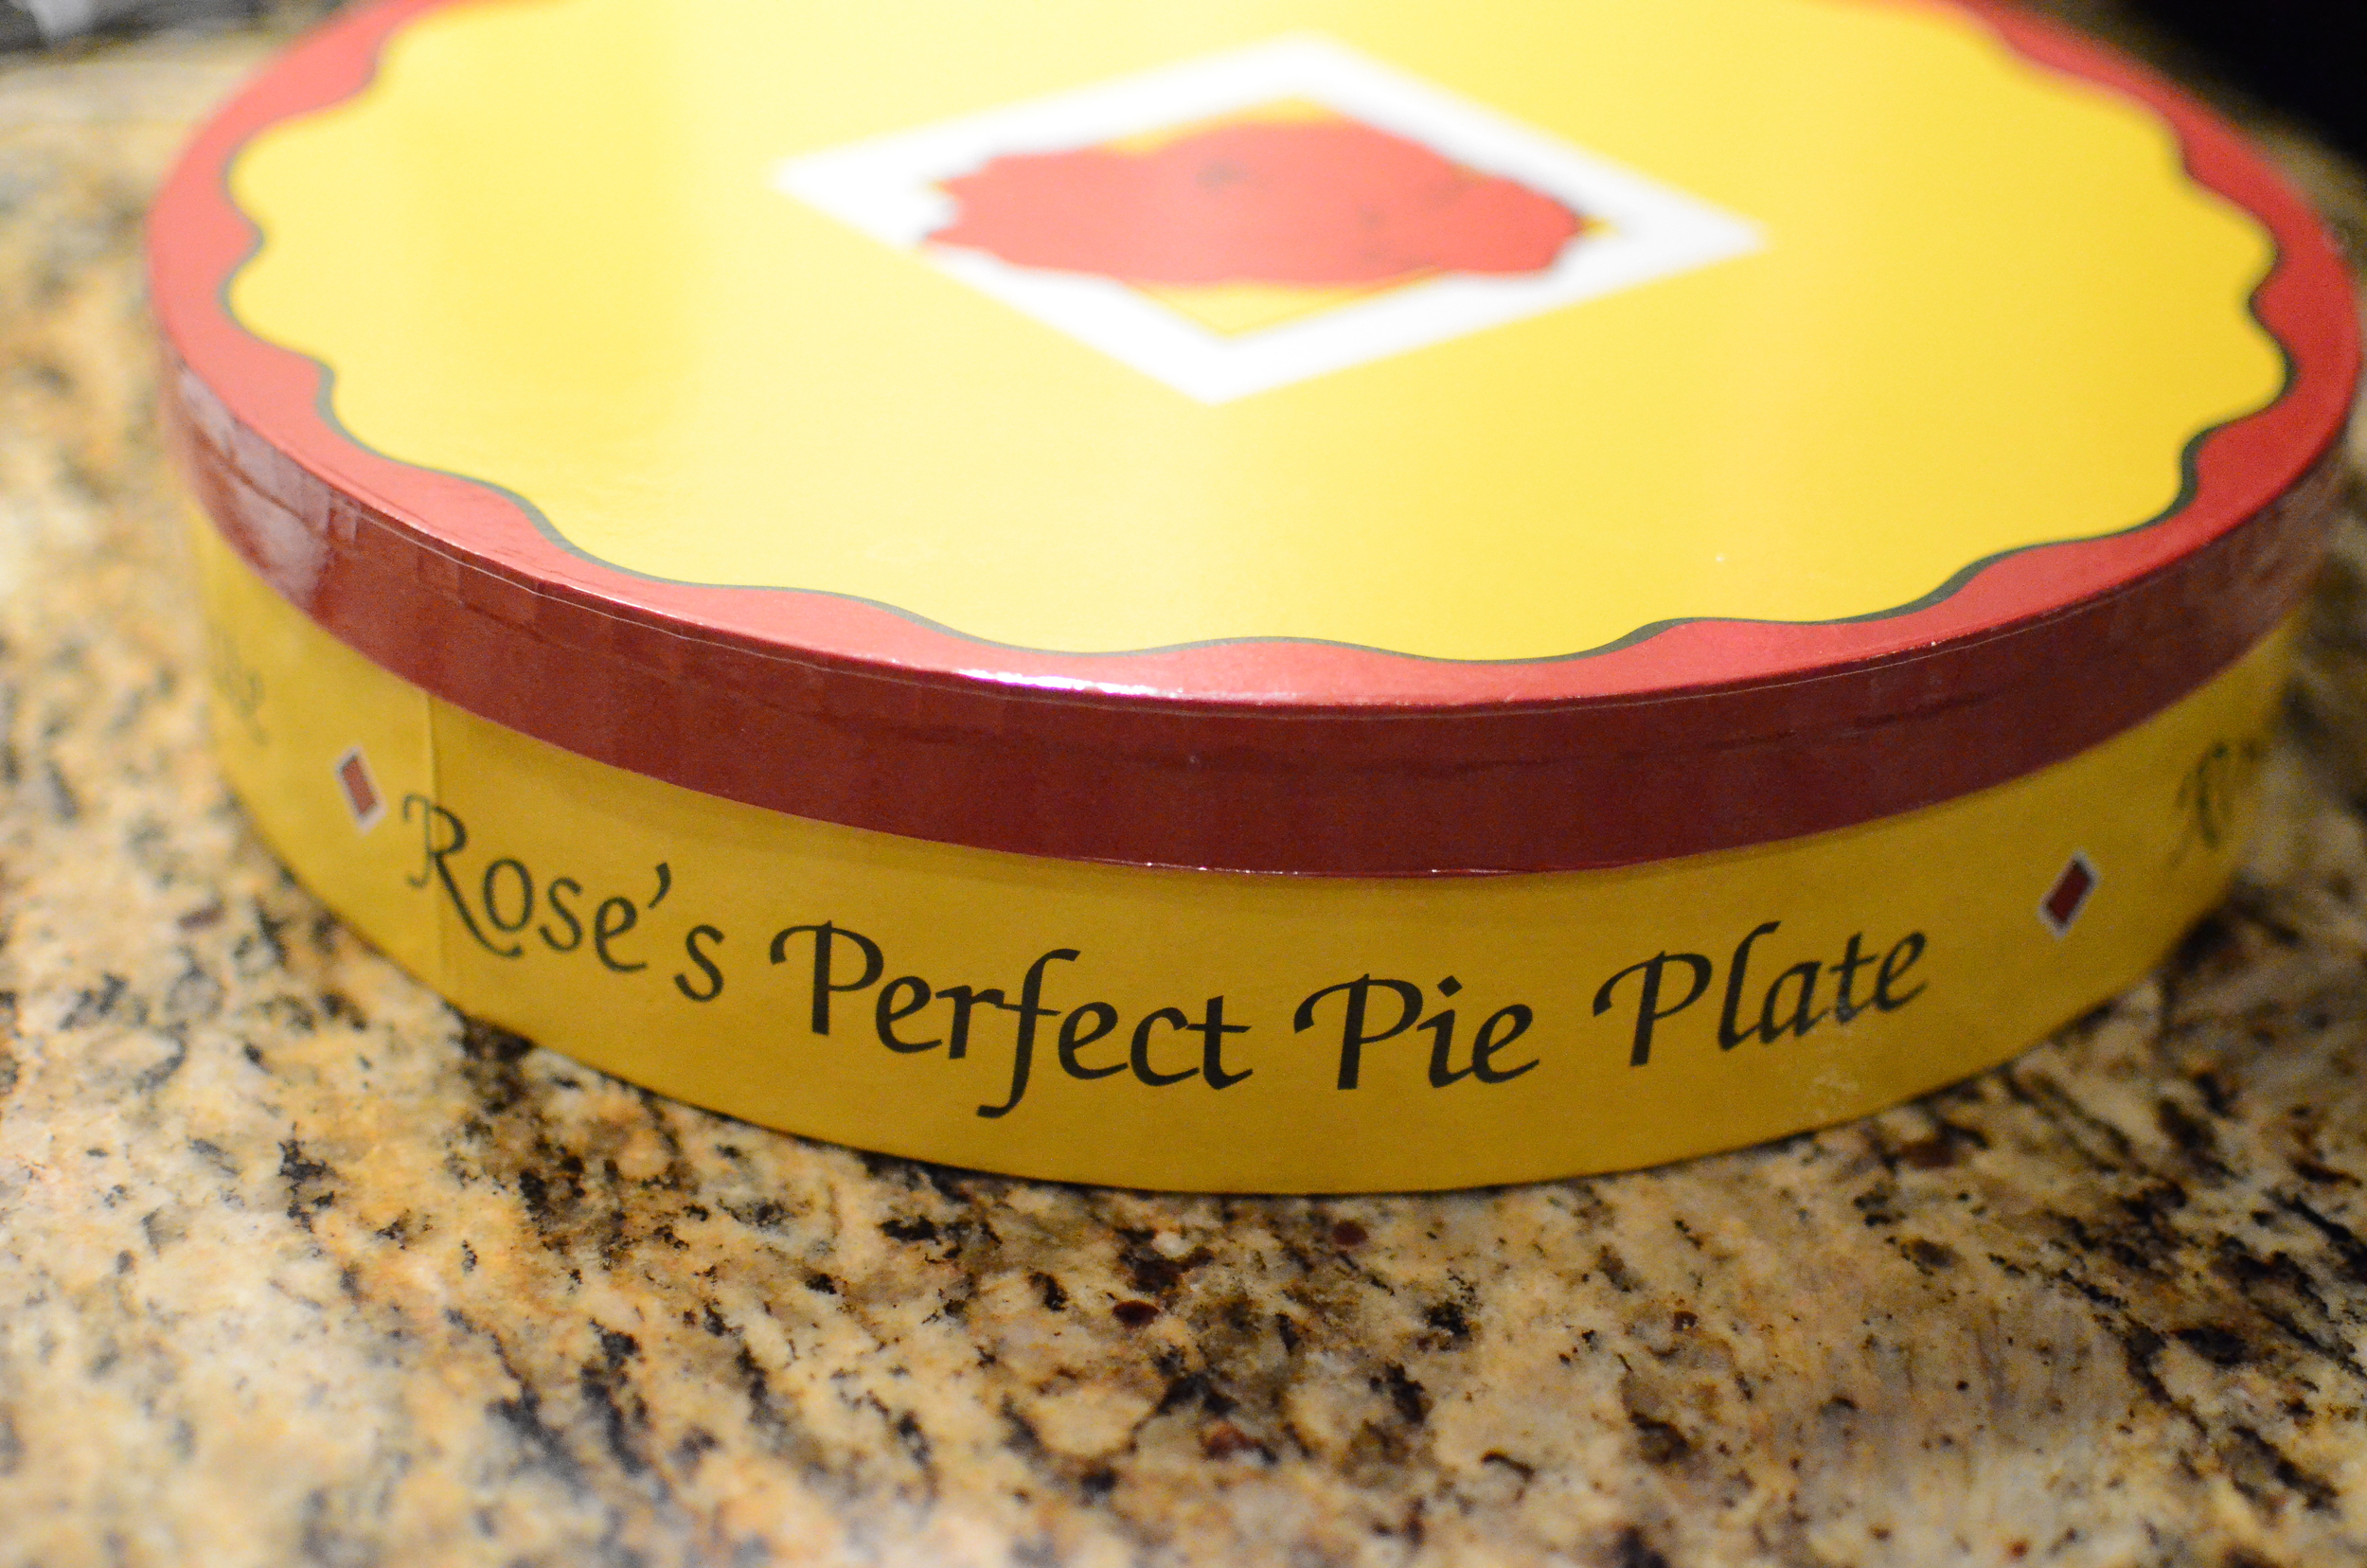 I got  Rose's Perfect Pie Plate  for Christmas and couldn't wait to use it.